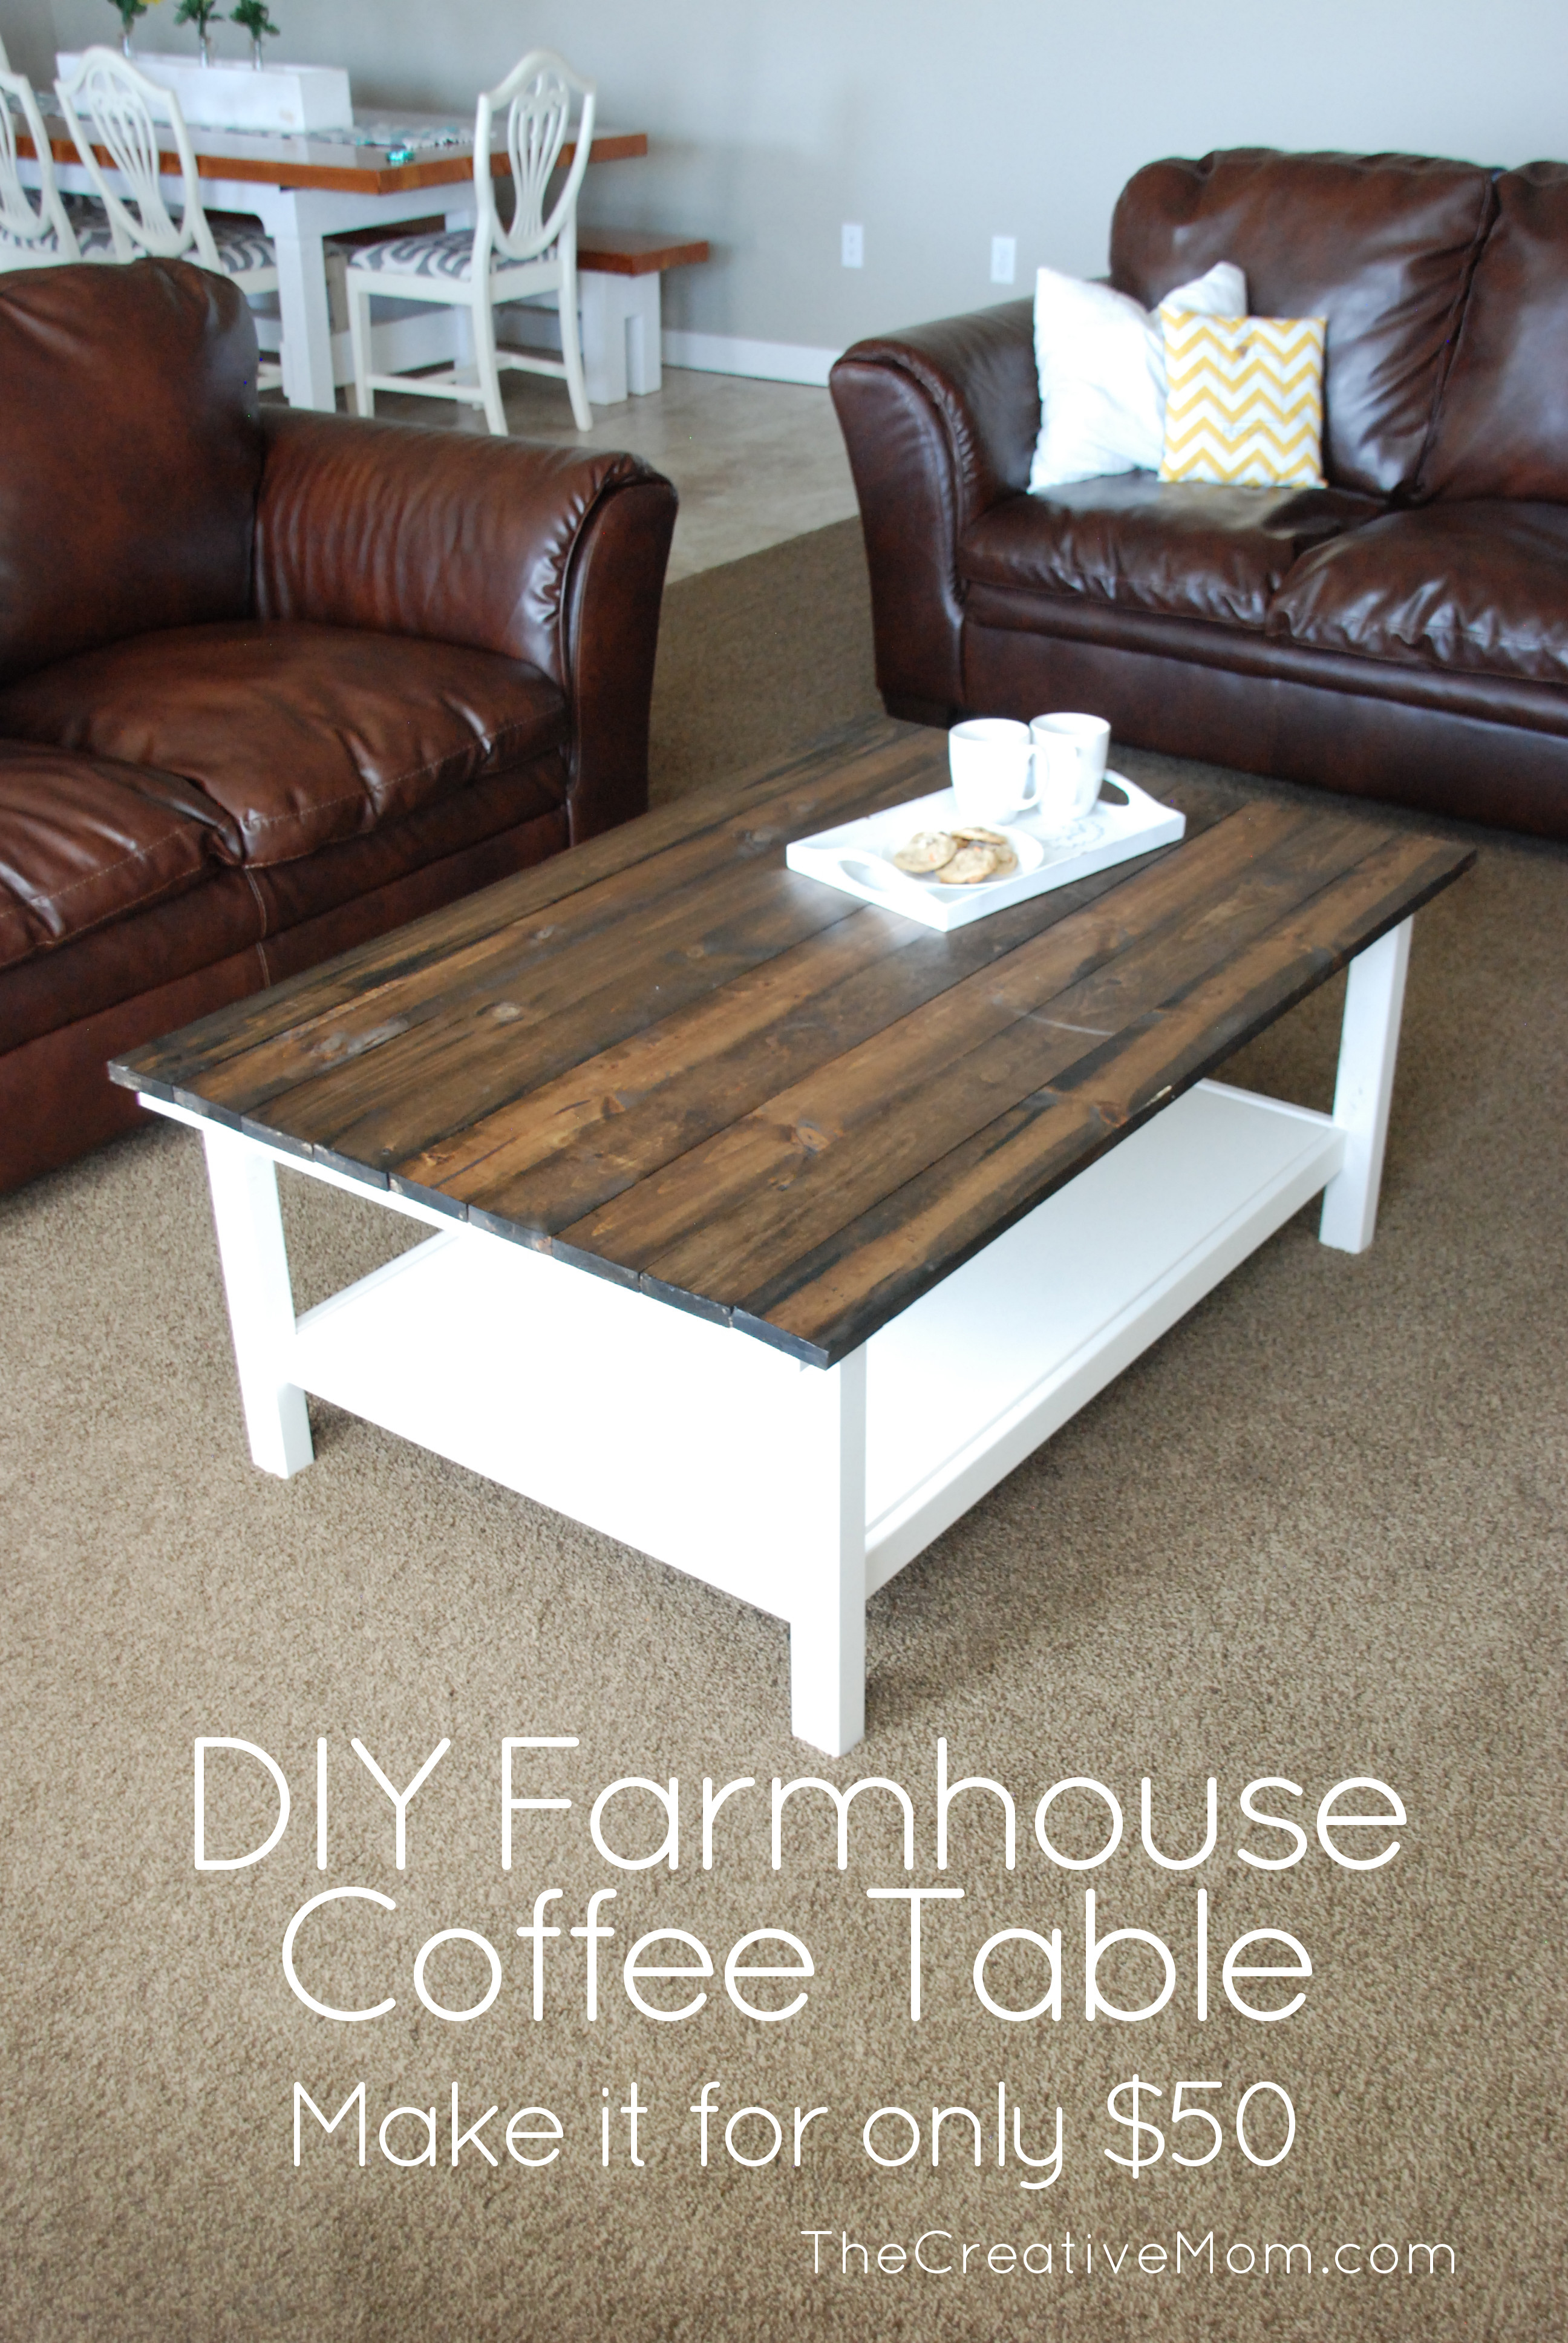 Best ideas about DIY Coffee Table Pinterest . Save or Pin DIY Farmhouse Coffee Table Now.